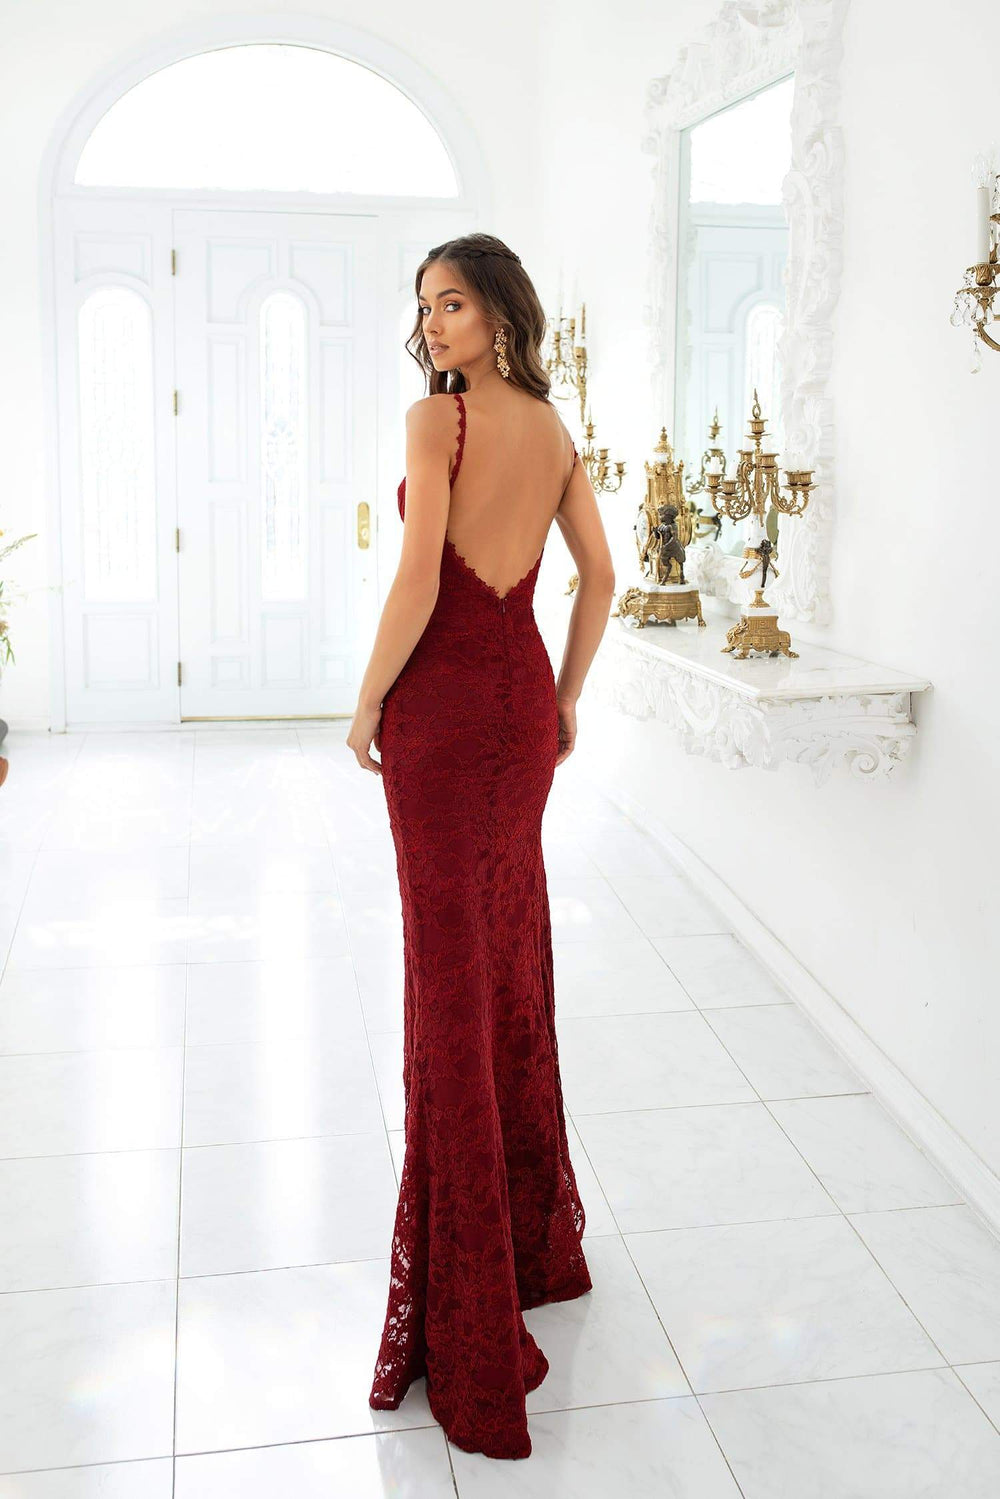 Caliana - Plum Lace Gown with Classic Bustier, Low Back & Side Slit